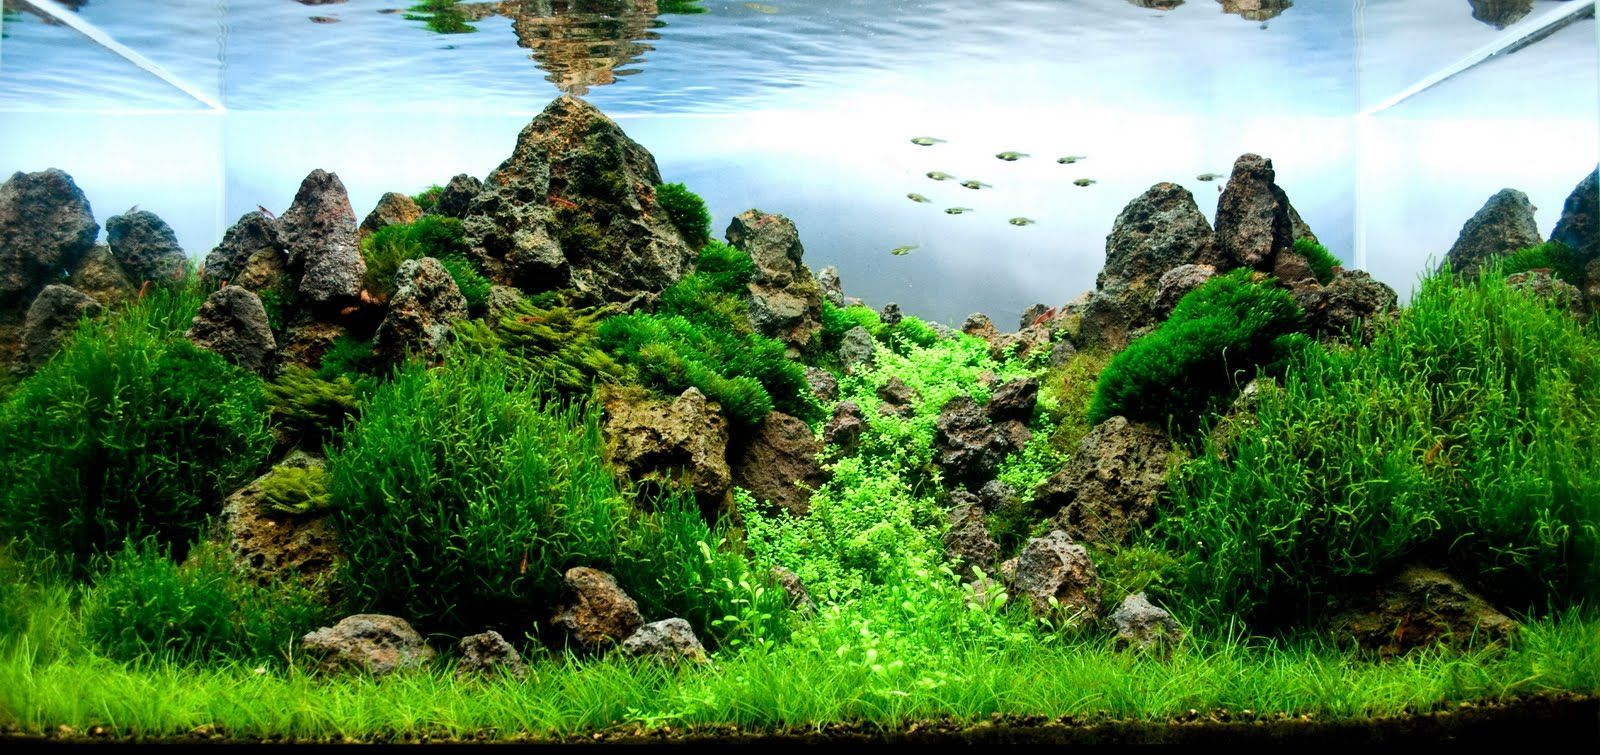 Freshwater fish in malaysia - Manage Your Freshwater Aquarium Tropical Fishes And Plants Aquatic Scapers Europe International Aquascaping Contest 2010 Results